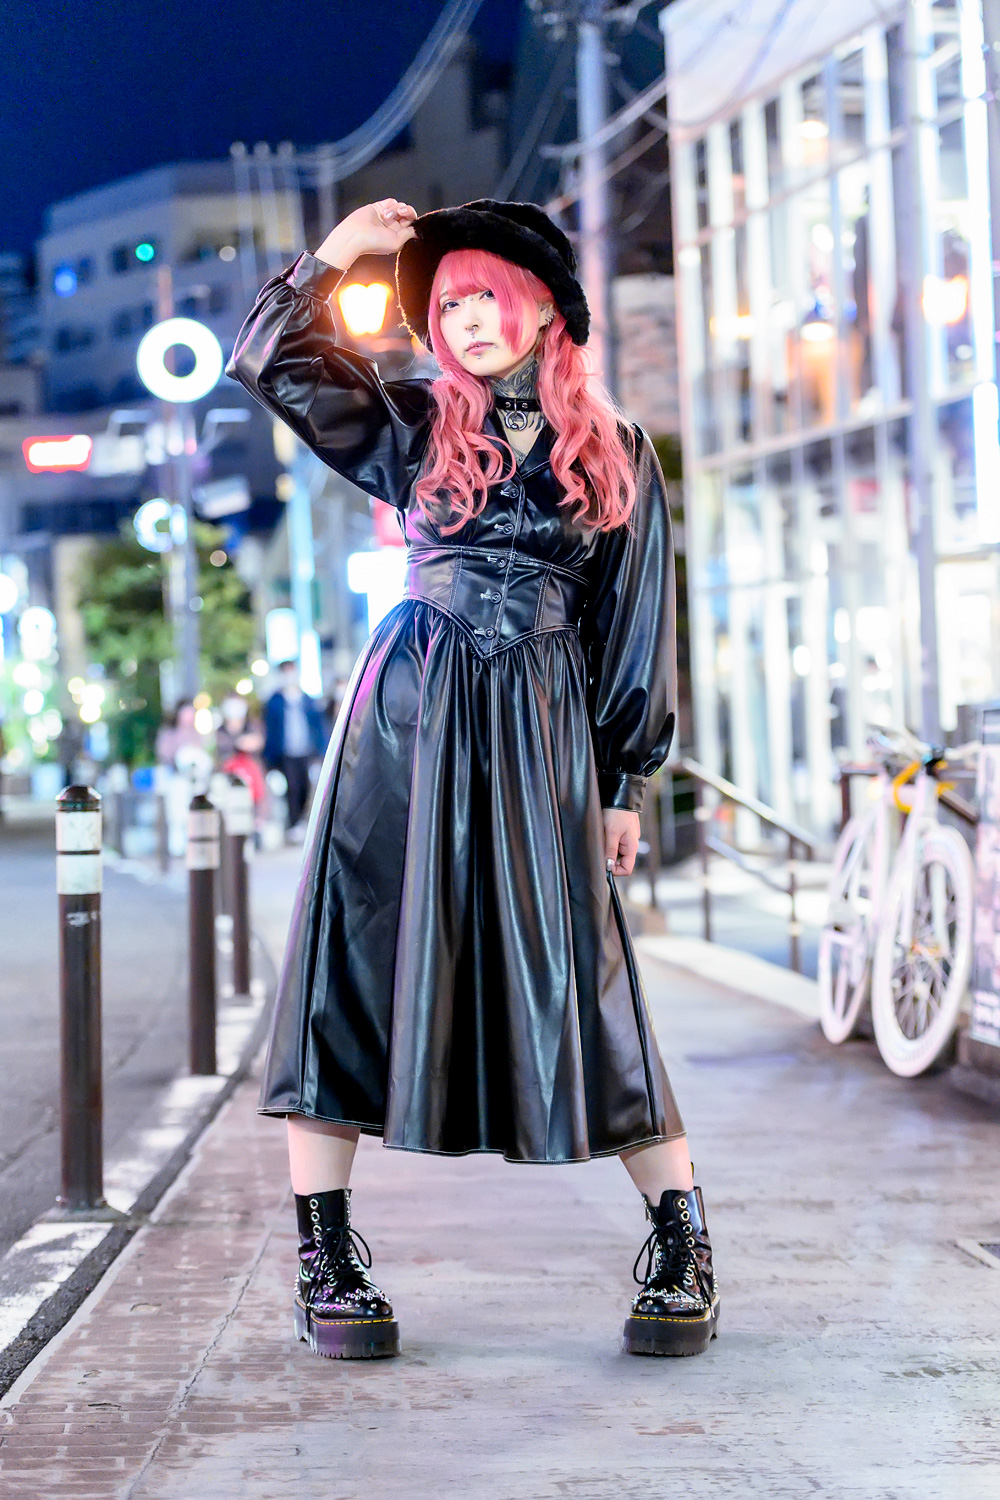 Pink Haired Harajuku Girl on Cat Street w/ Tattoos, Jouetie Leather Dress, Choker & Spiked Boots